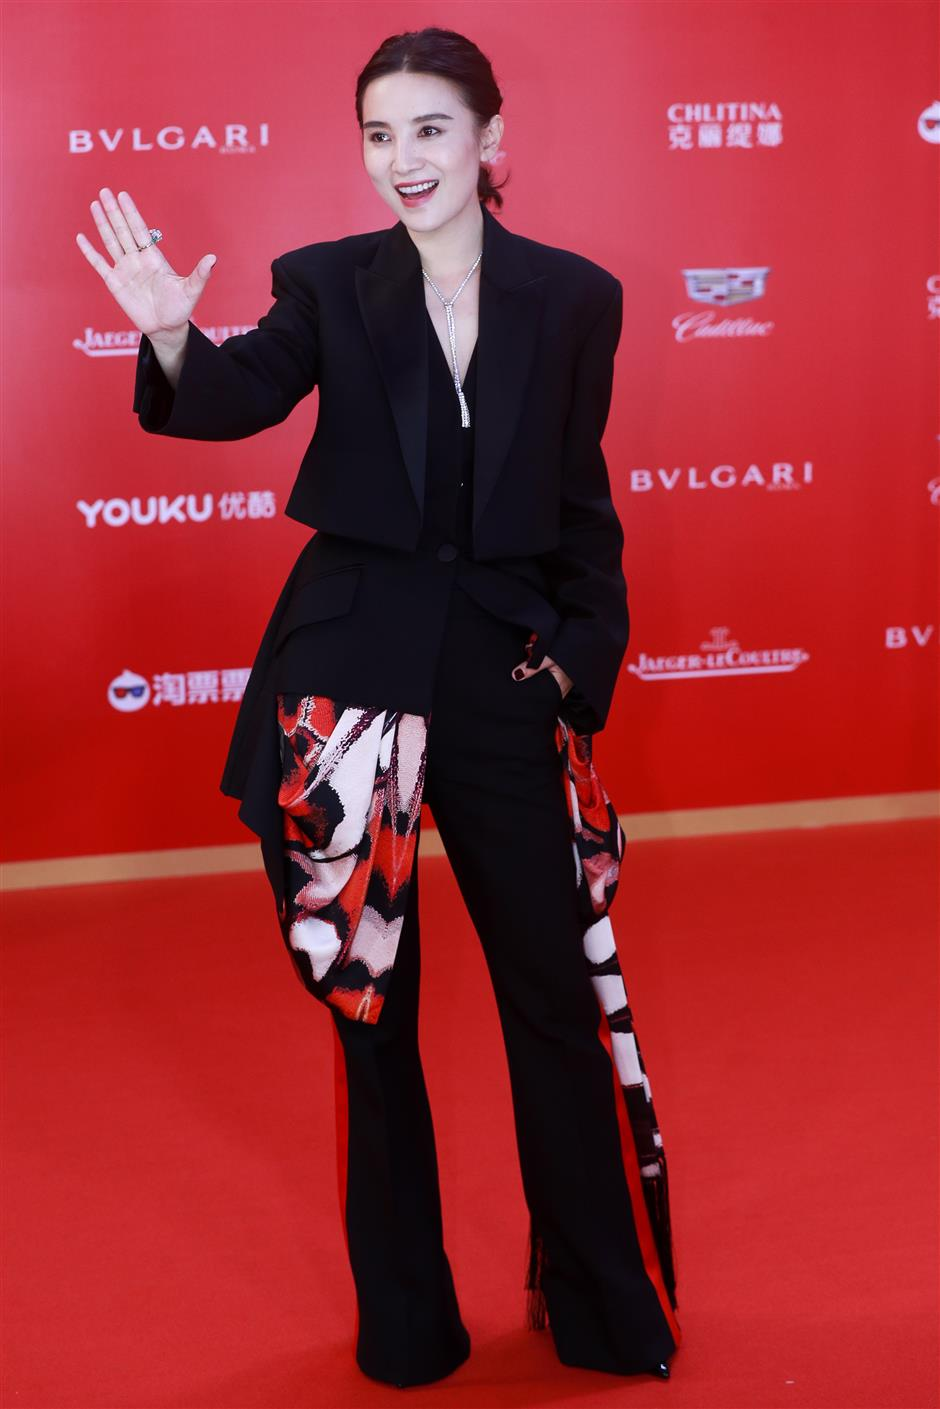 Shanghai film fest opens with star-studded red carpet